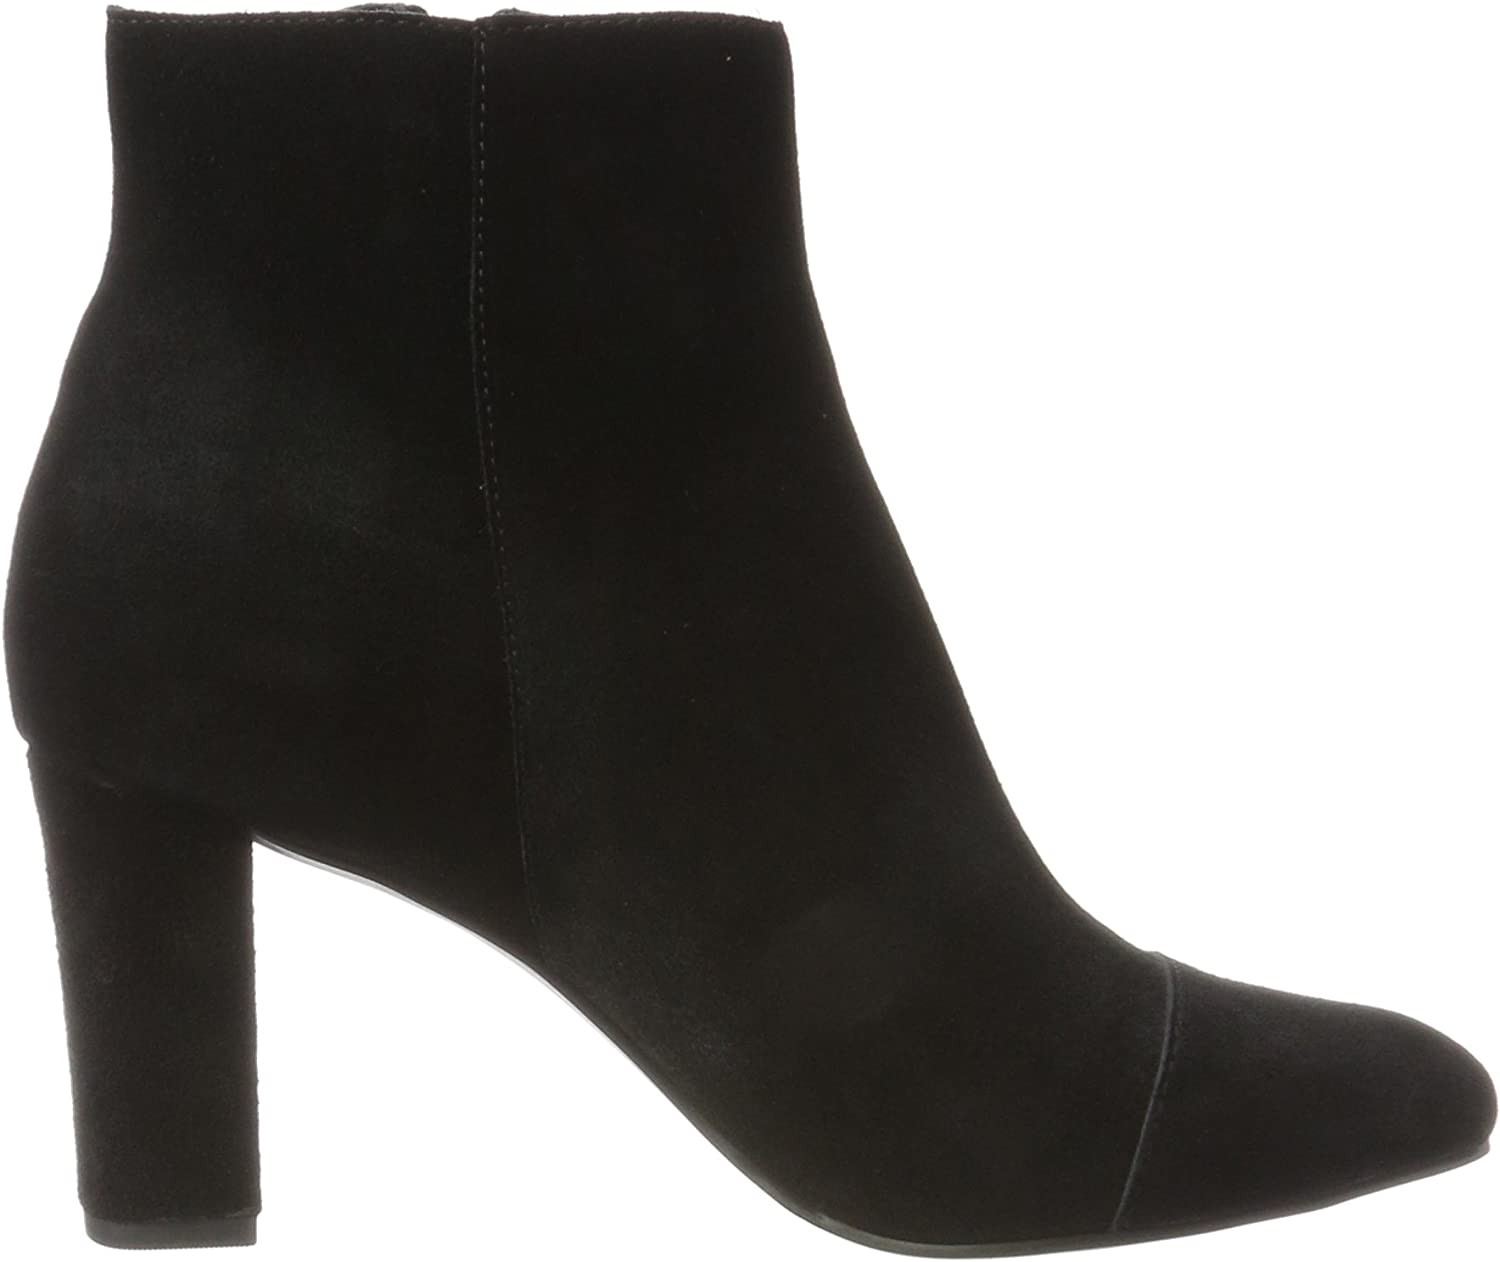 Shoe The Bear Damen Fox S Stiefel Schwarz 110 Black